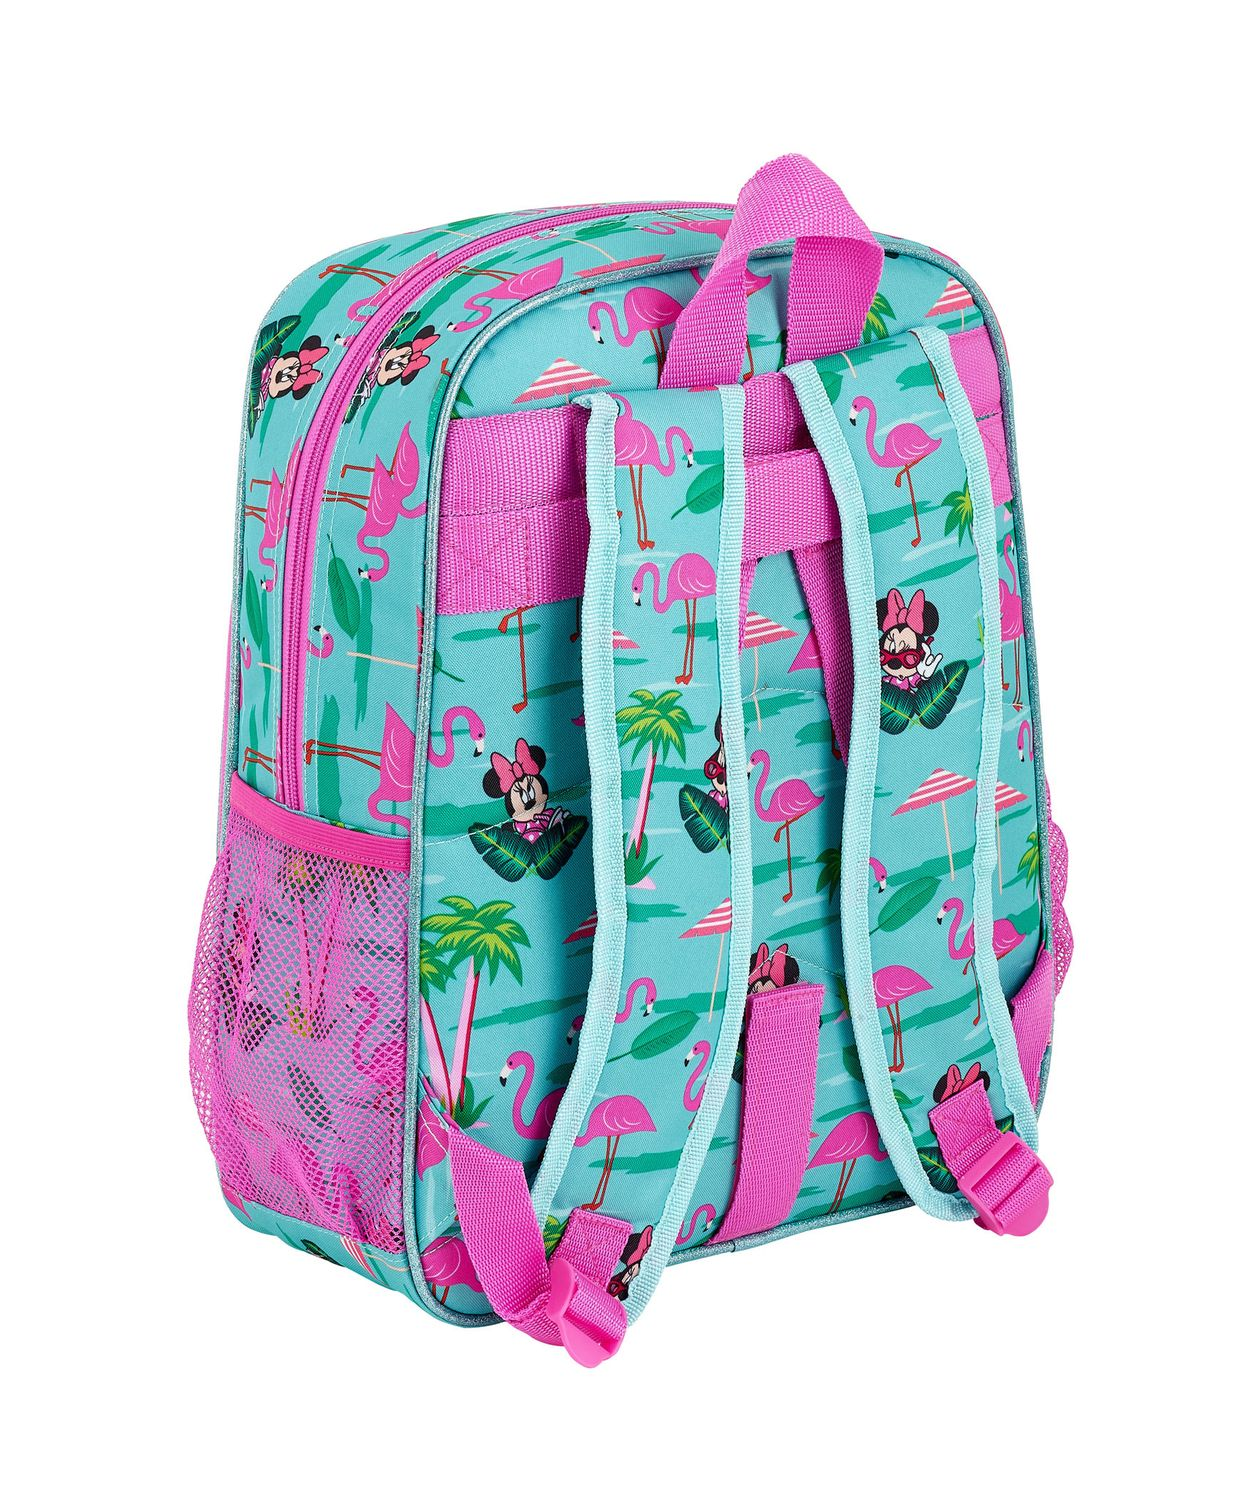 Rucksack Backpack Minnie Mouse Spring Palms 38 cm – image 2